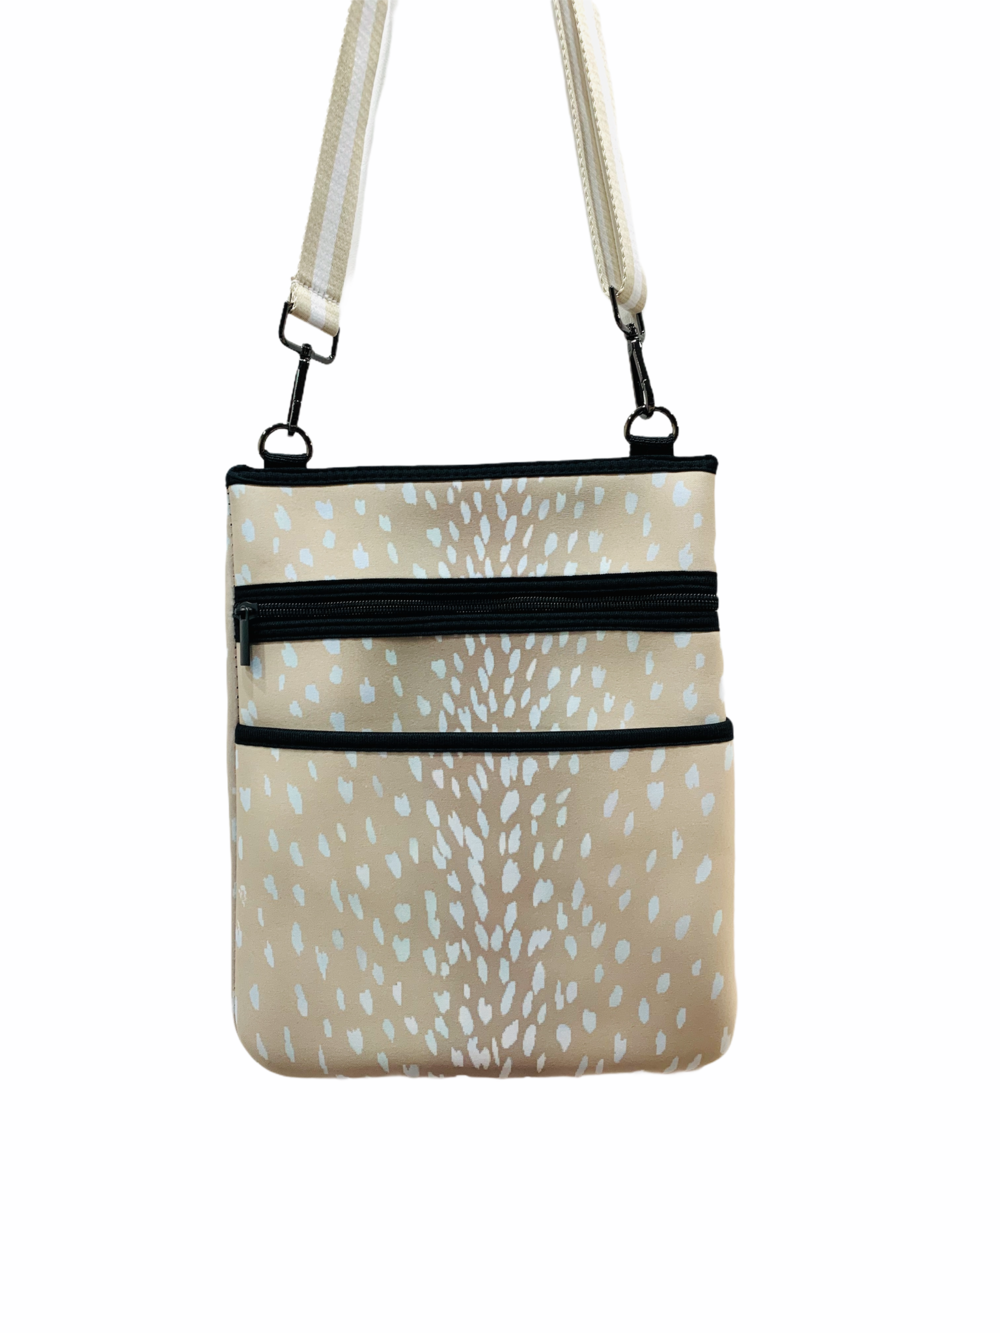 Champagne Fawn Crossbody Tote